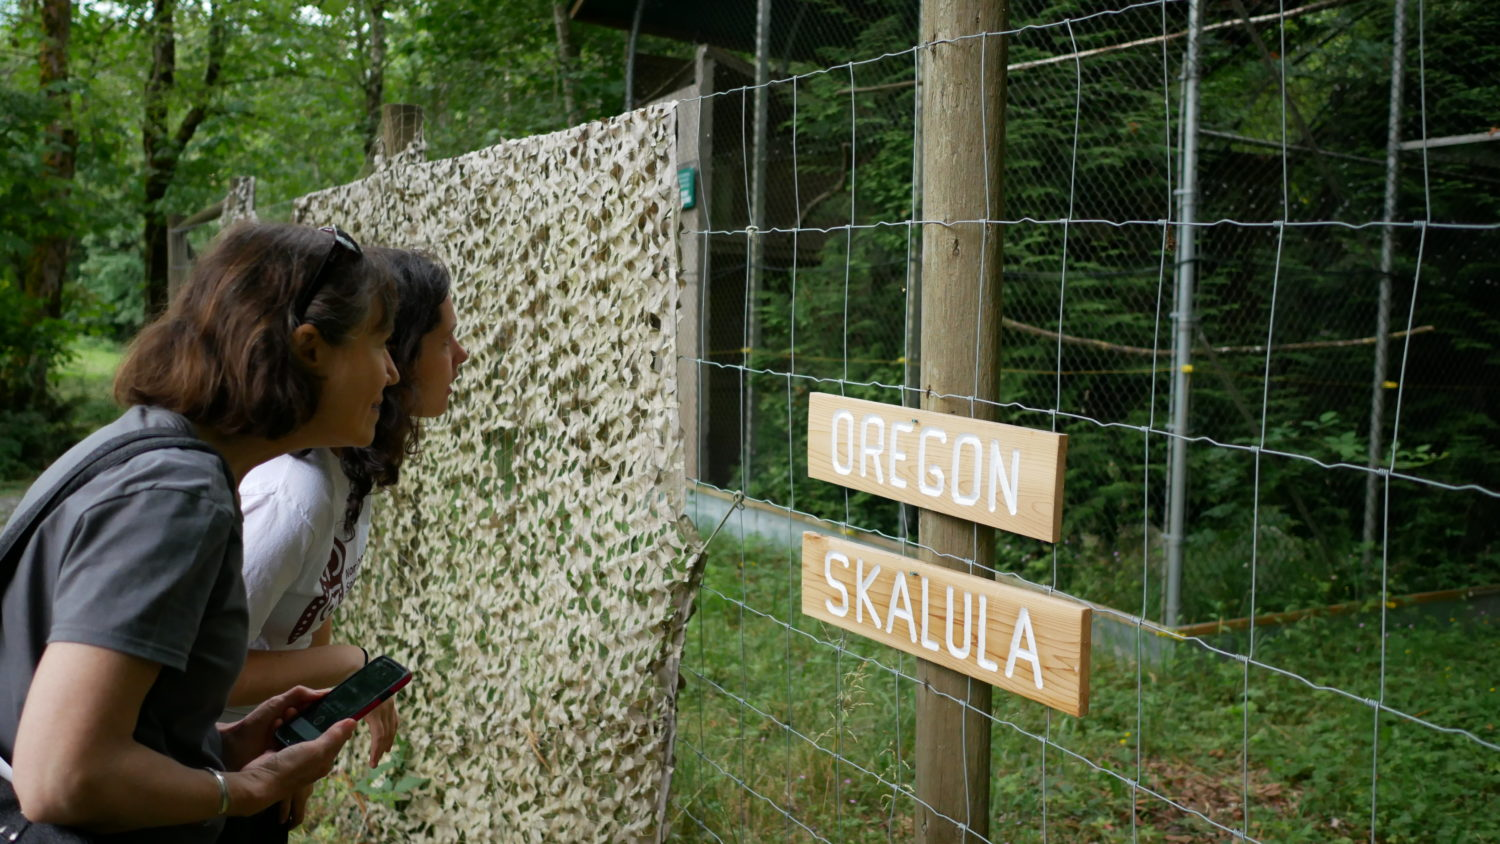 Cox and McCulligh search for spotted owls, Oregon and Skalula, in their quiet aviary. Photo: Carol Linnitt / The Narwhal